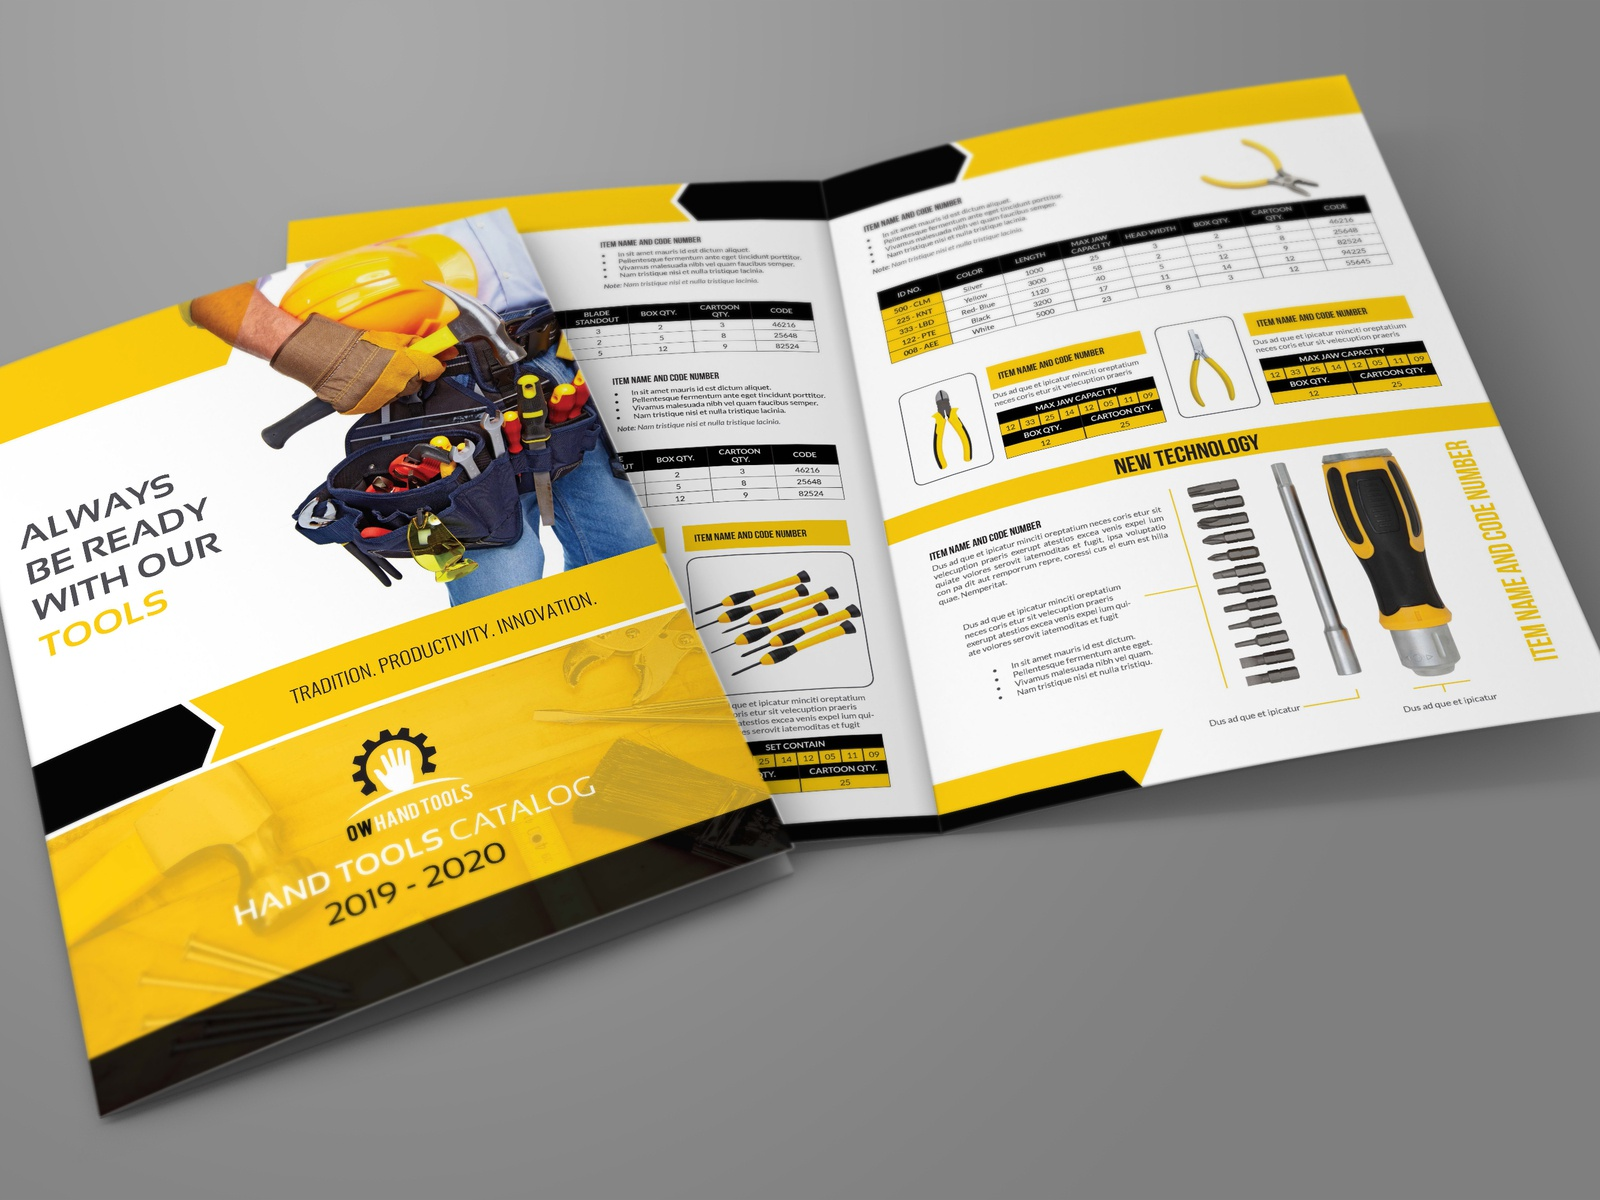 hand tools products catalog brochure template by owpictures on dribbble